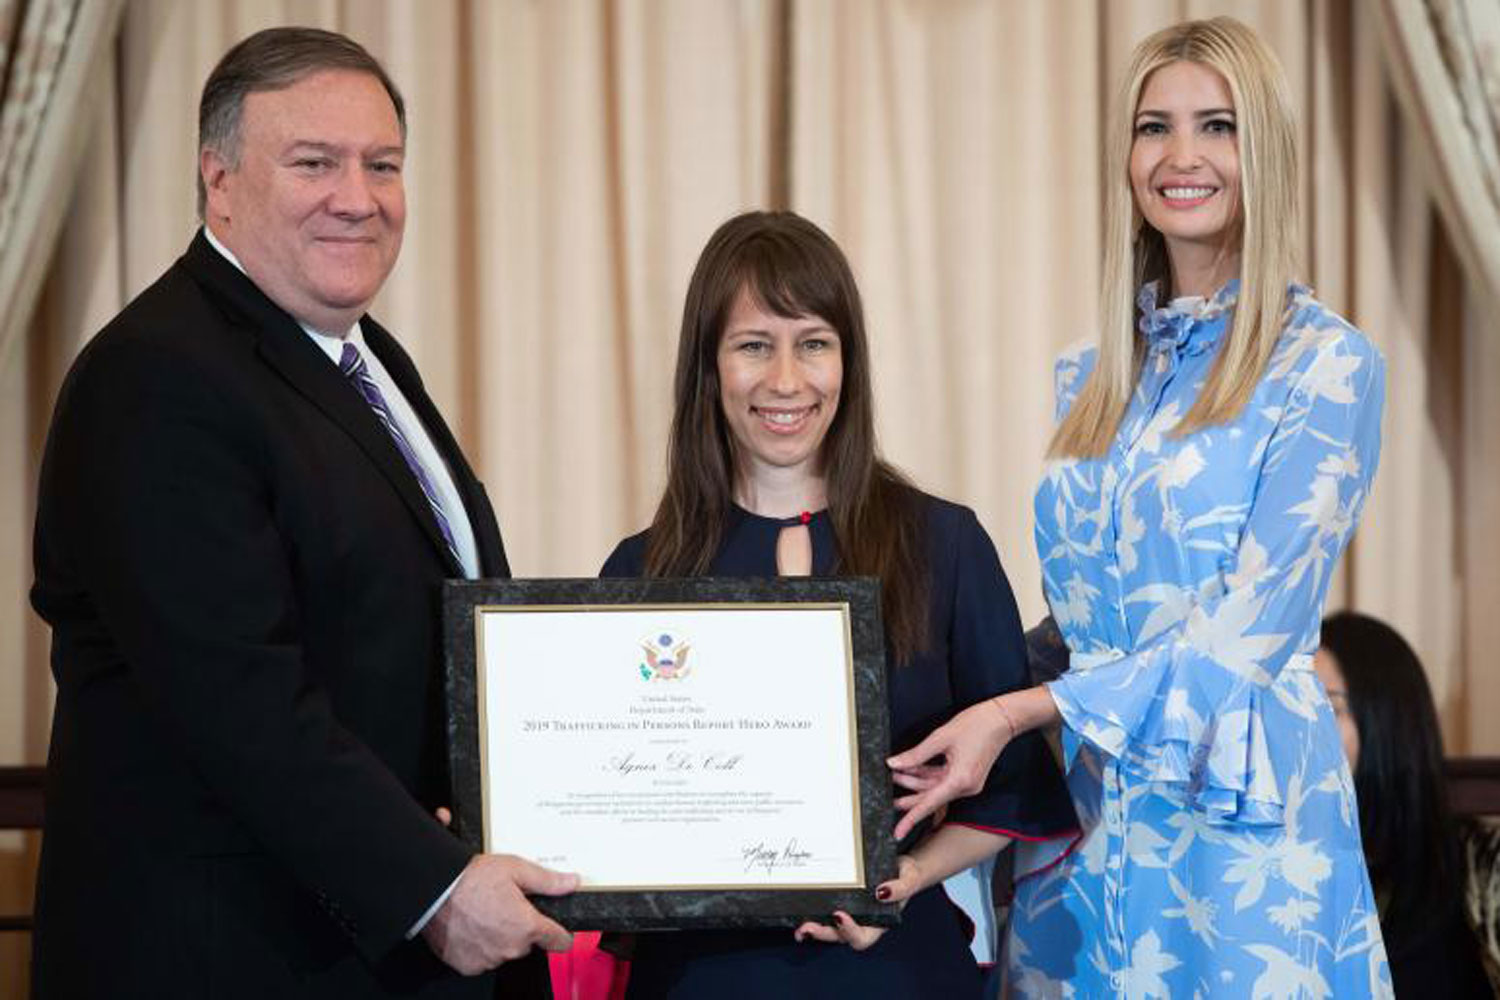 US Secretary of State Mike Pompeo (L) and Senior White House Advisor Ivanka Trump (R) present Agnes De Coll of Hungary with the 2019 TIP Report Hero Award for her work to fight against human trafficking during a ceremony releasing the 2019 Trafficking in Persons Report at the State Department in Washington, DC, June 20, 2019. (AFP photo)